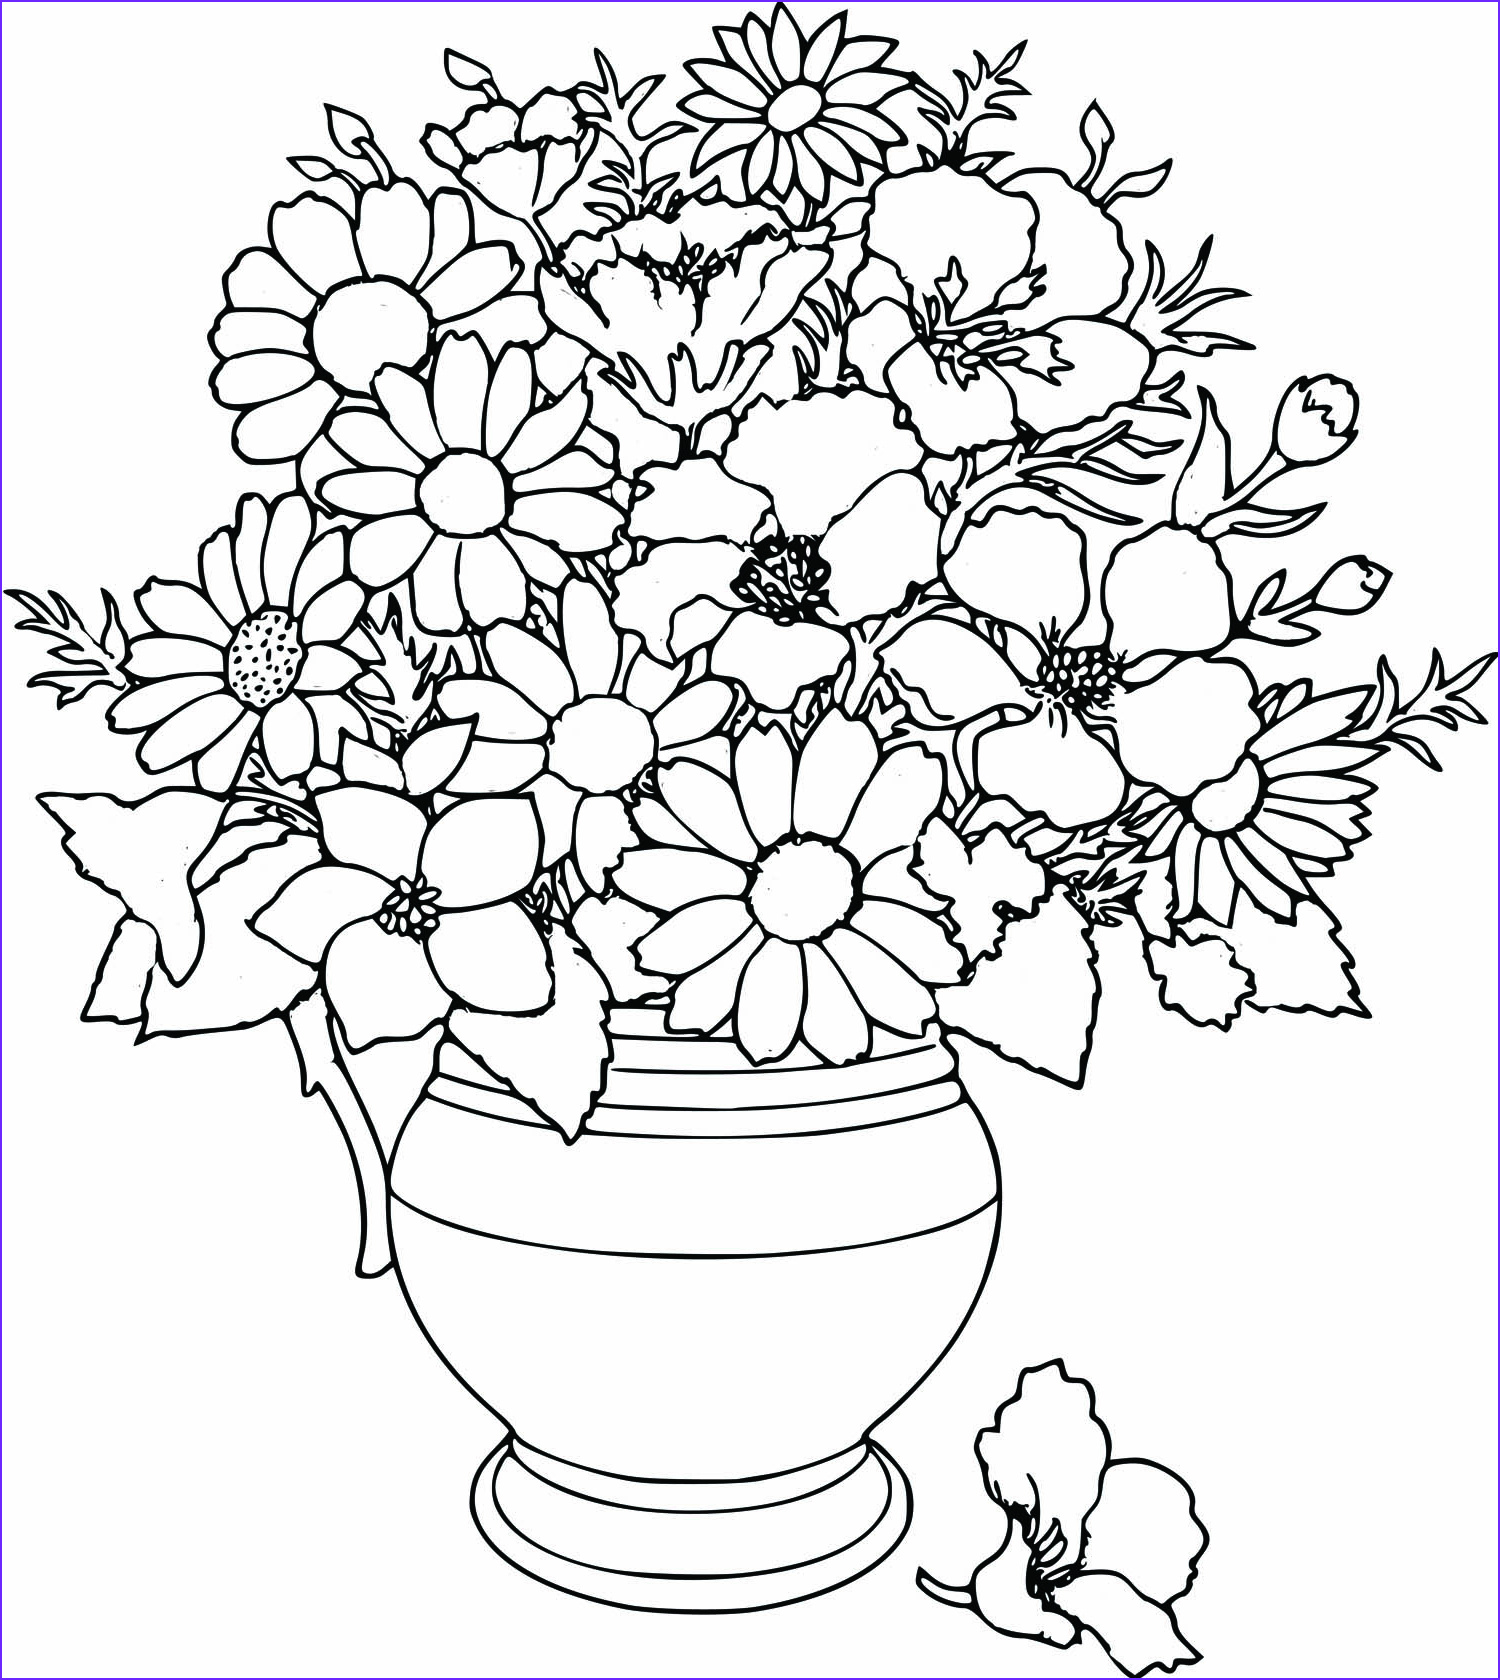 mothers day colouring contest